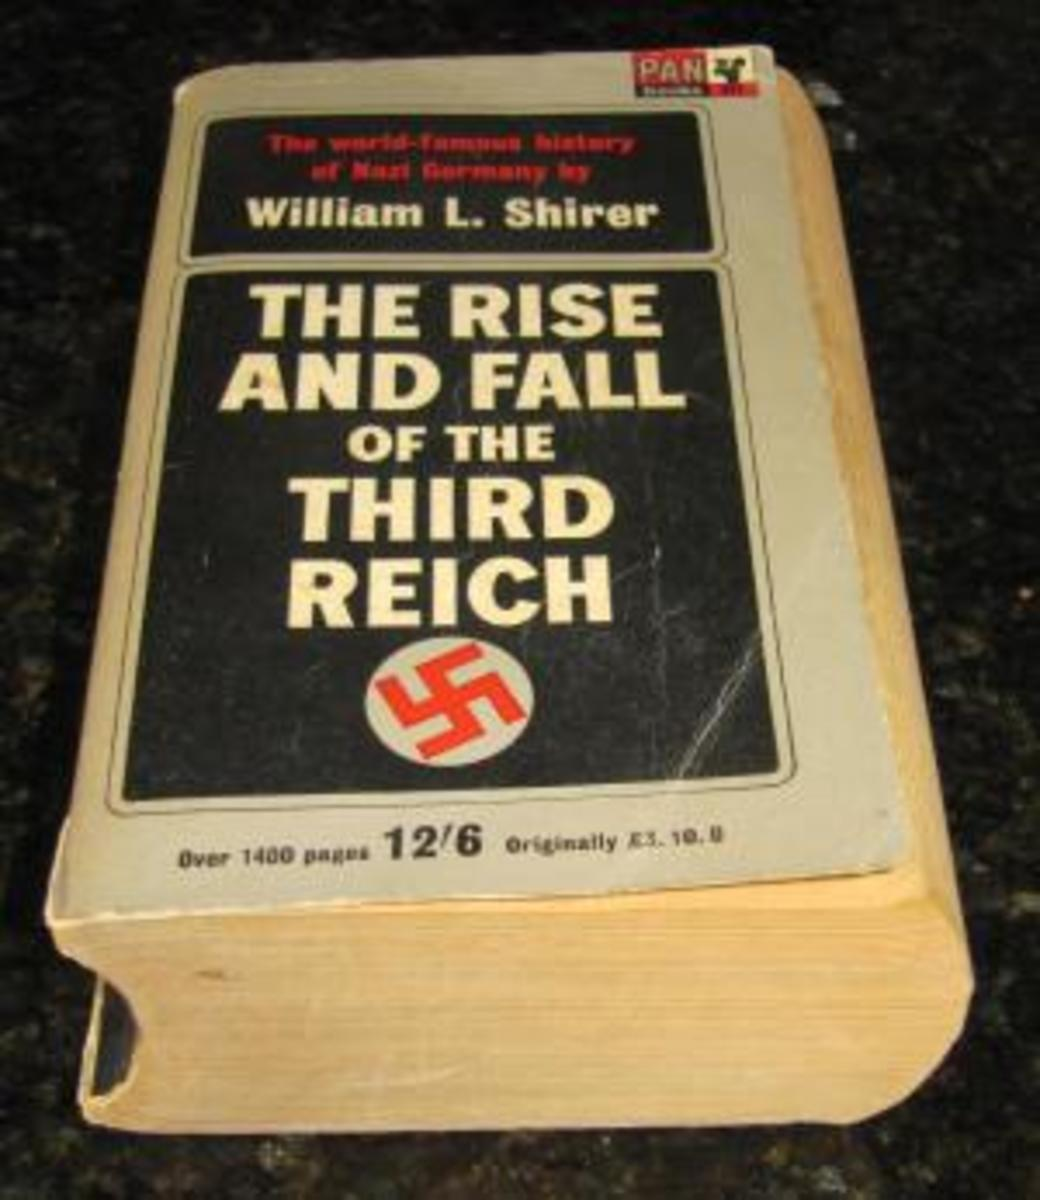 from abebooks.co.uk: a copy of William Shirer's definitive book on the subject.